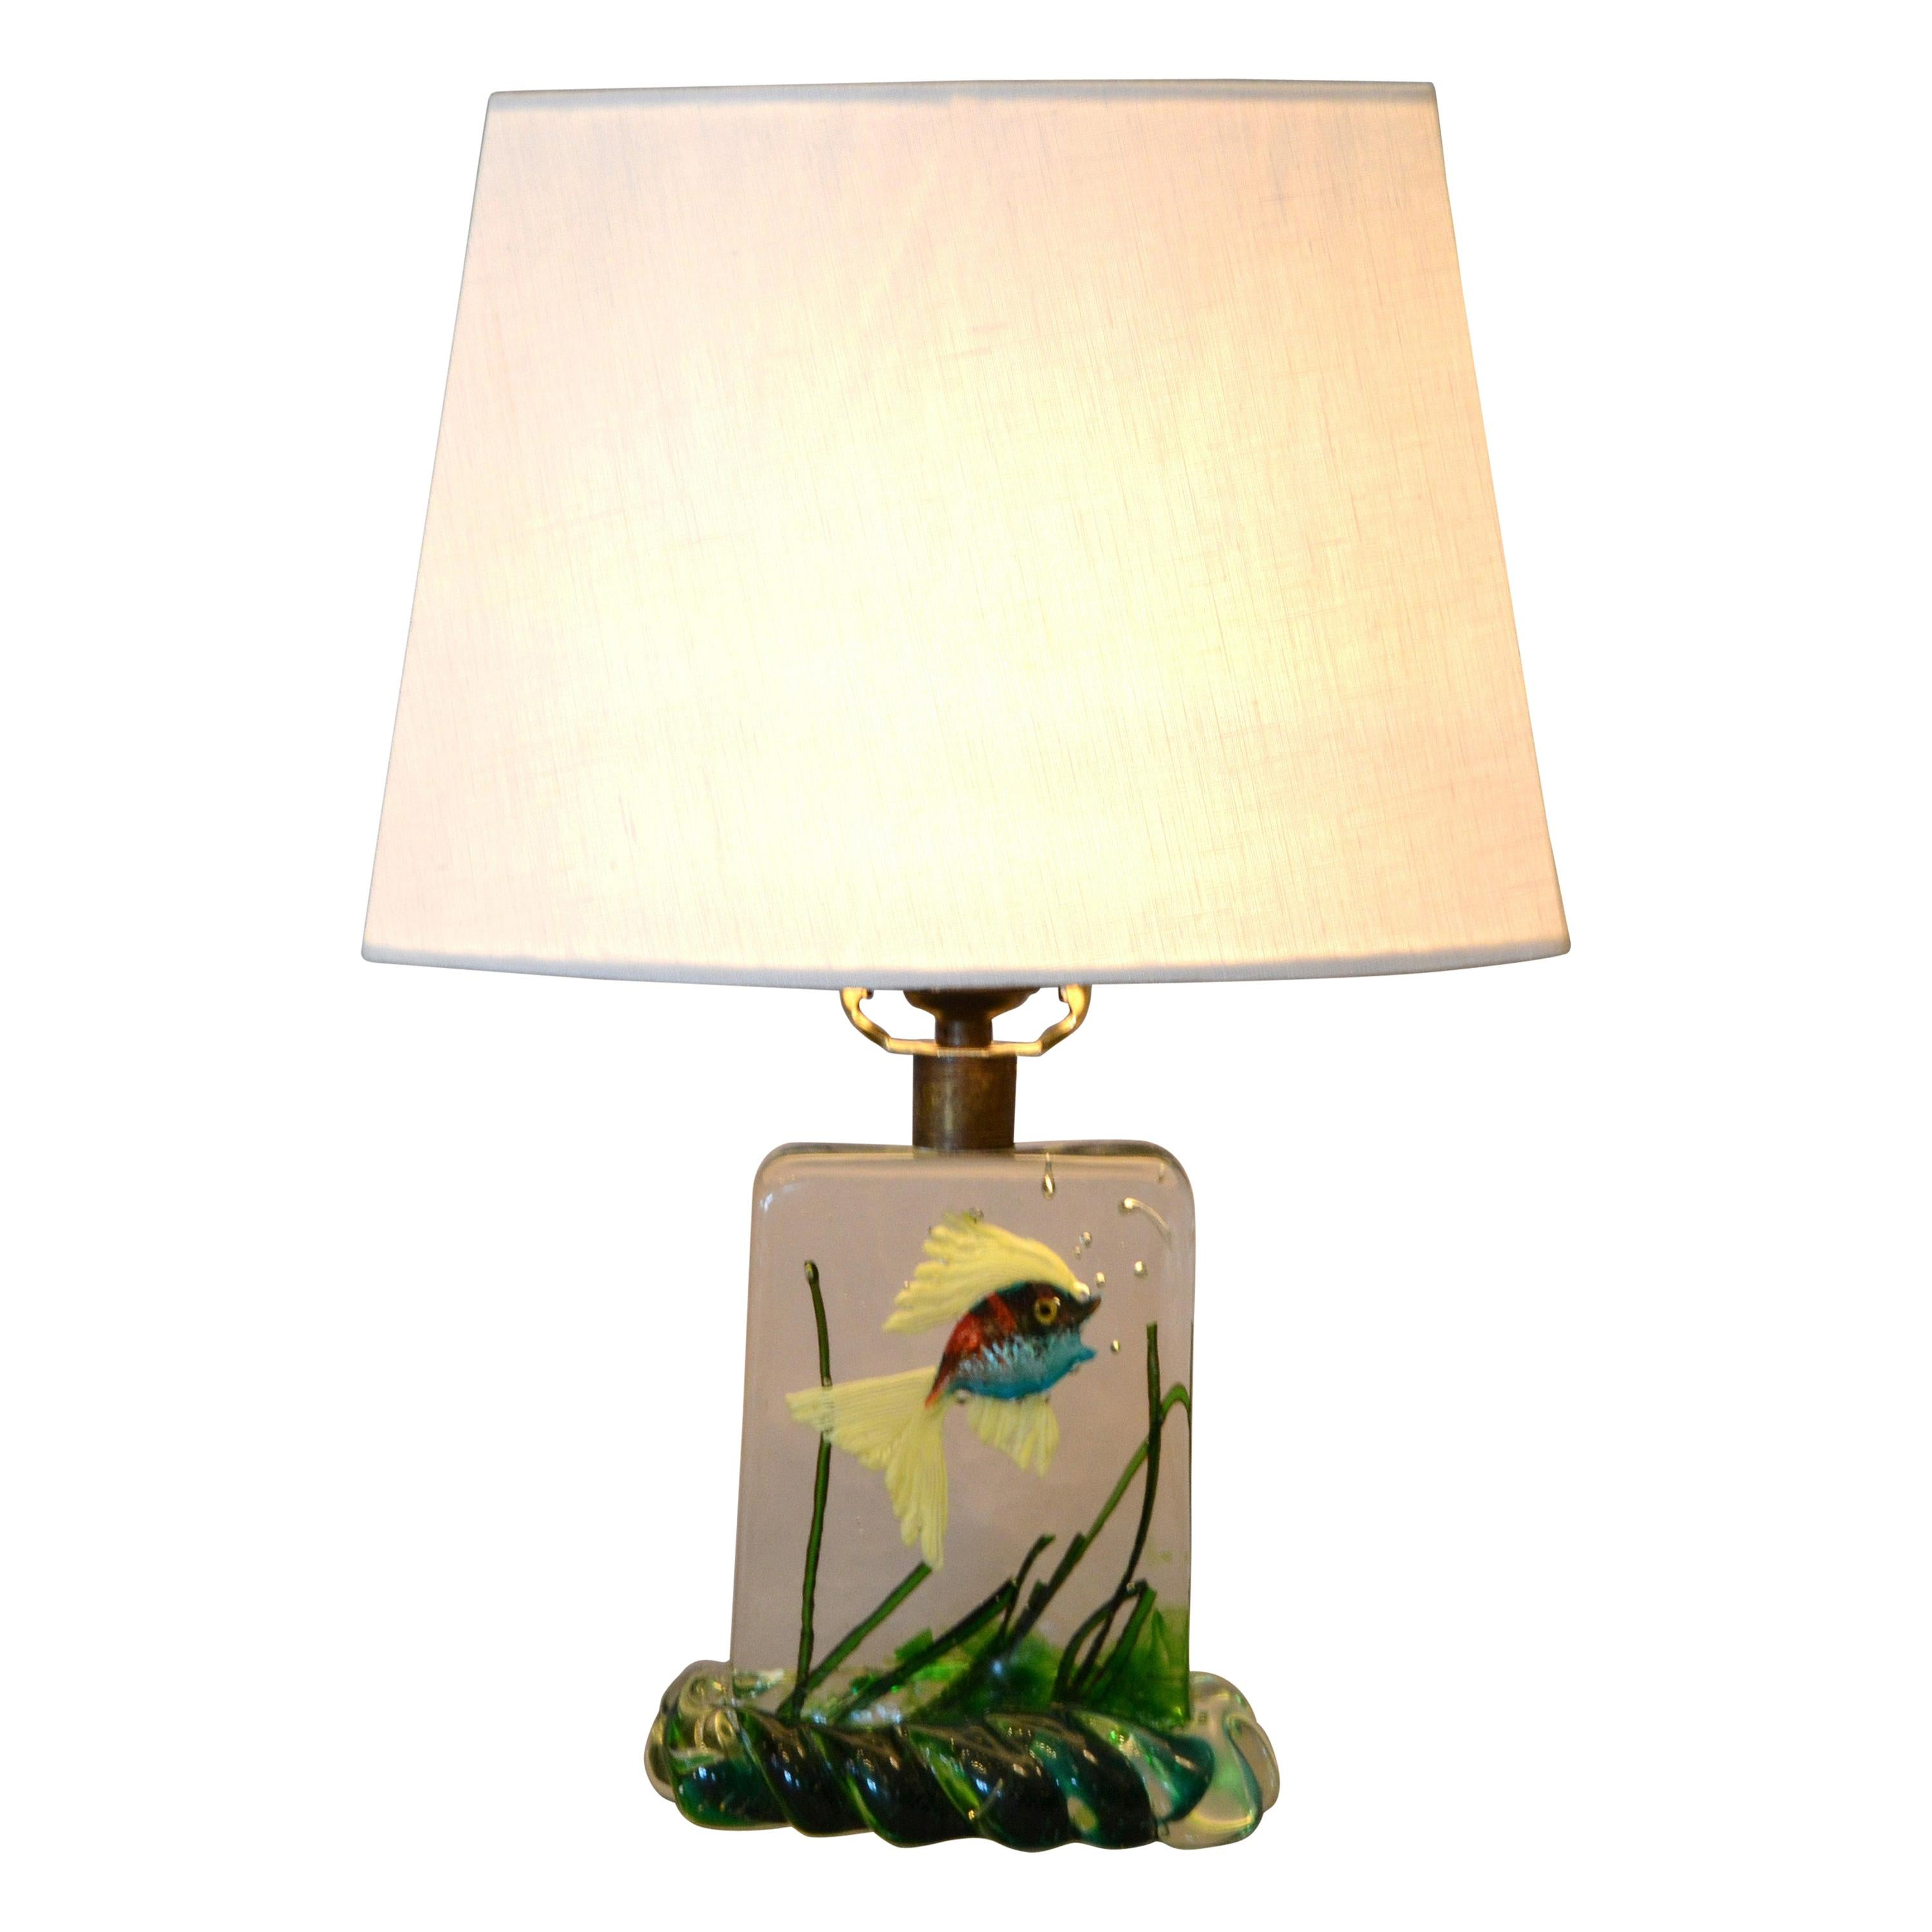 Gino Cenedese Murano Glass Table Lamp & Shade with Fish and Seaweed, Italy, 1950